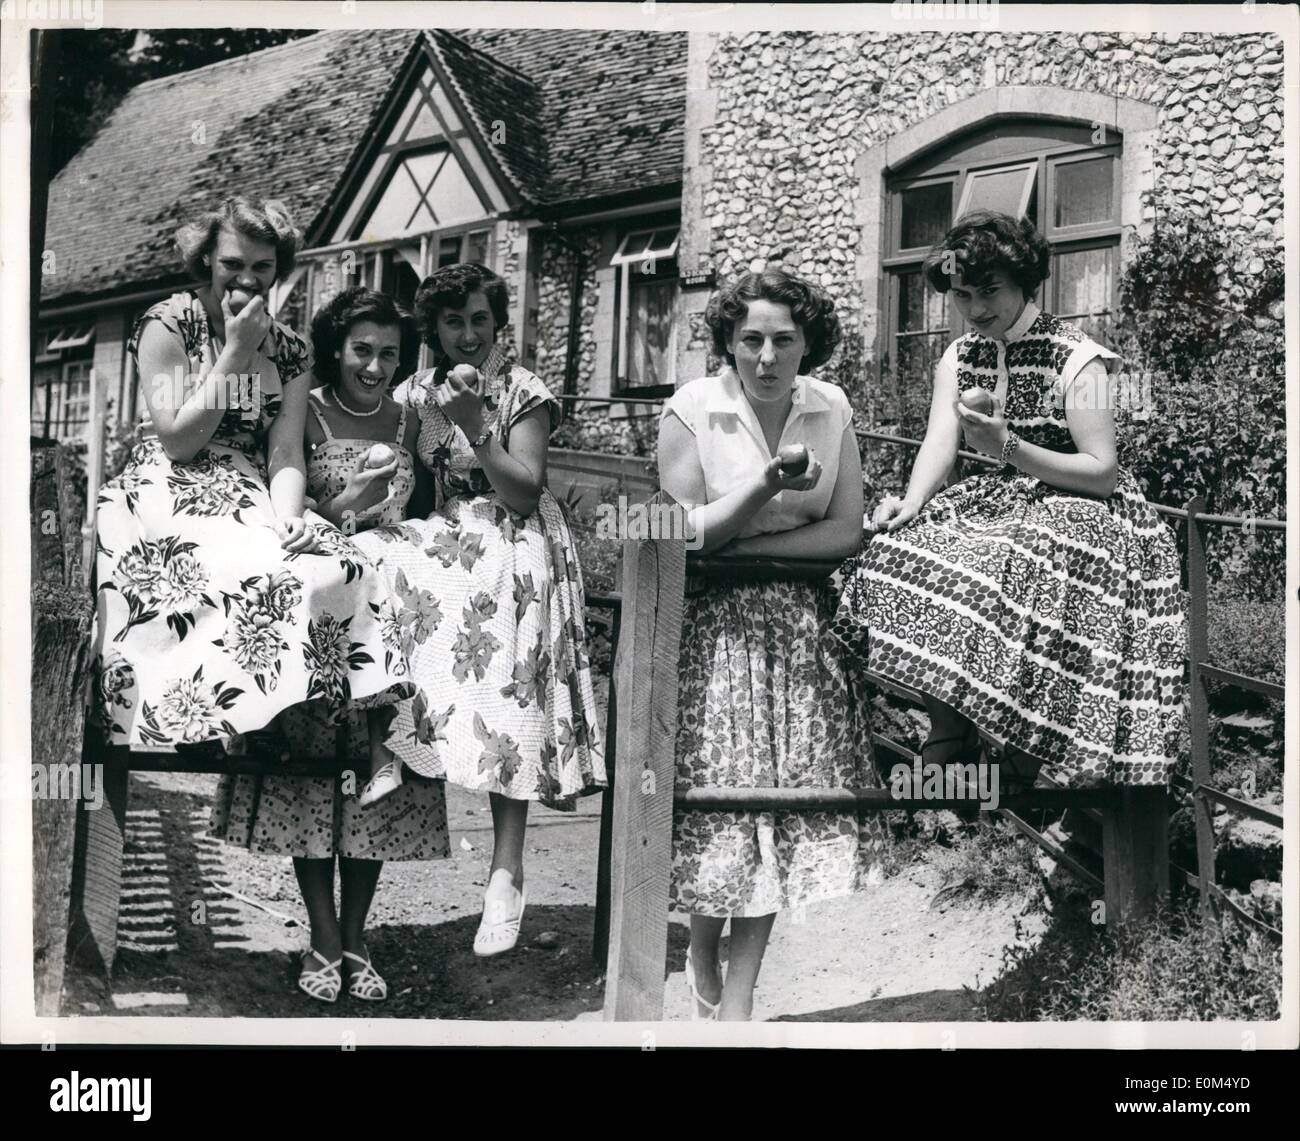 Jul. 07, 1953 - Village of Beautiful Girls- Girls Outnumber men by Four to one: Bramber with a population of 400 is decreed in guide books as one of the most picturesque villages in Sussex. But it isn't one of the most romantic. The reason for that is because there is only one eligible bachelor for every four of its glamorous girls. Mrs. Peggy Glenie, manageress of the Castle Hotel said, ''The shortage of men is terrible''. Every evening groups of two or three girls go into Mrs. Glenie's her just to pass away the time - Stock Image